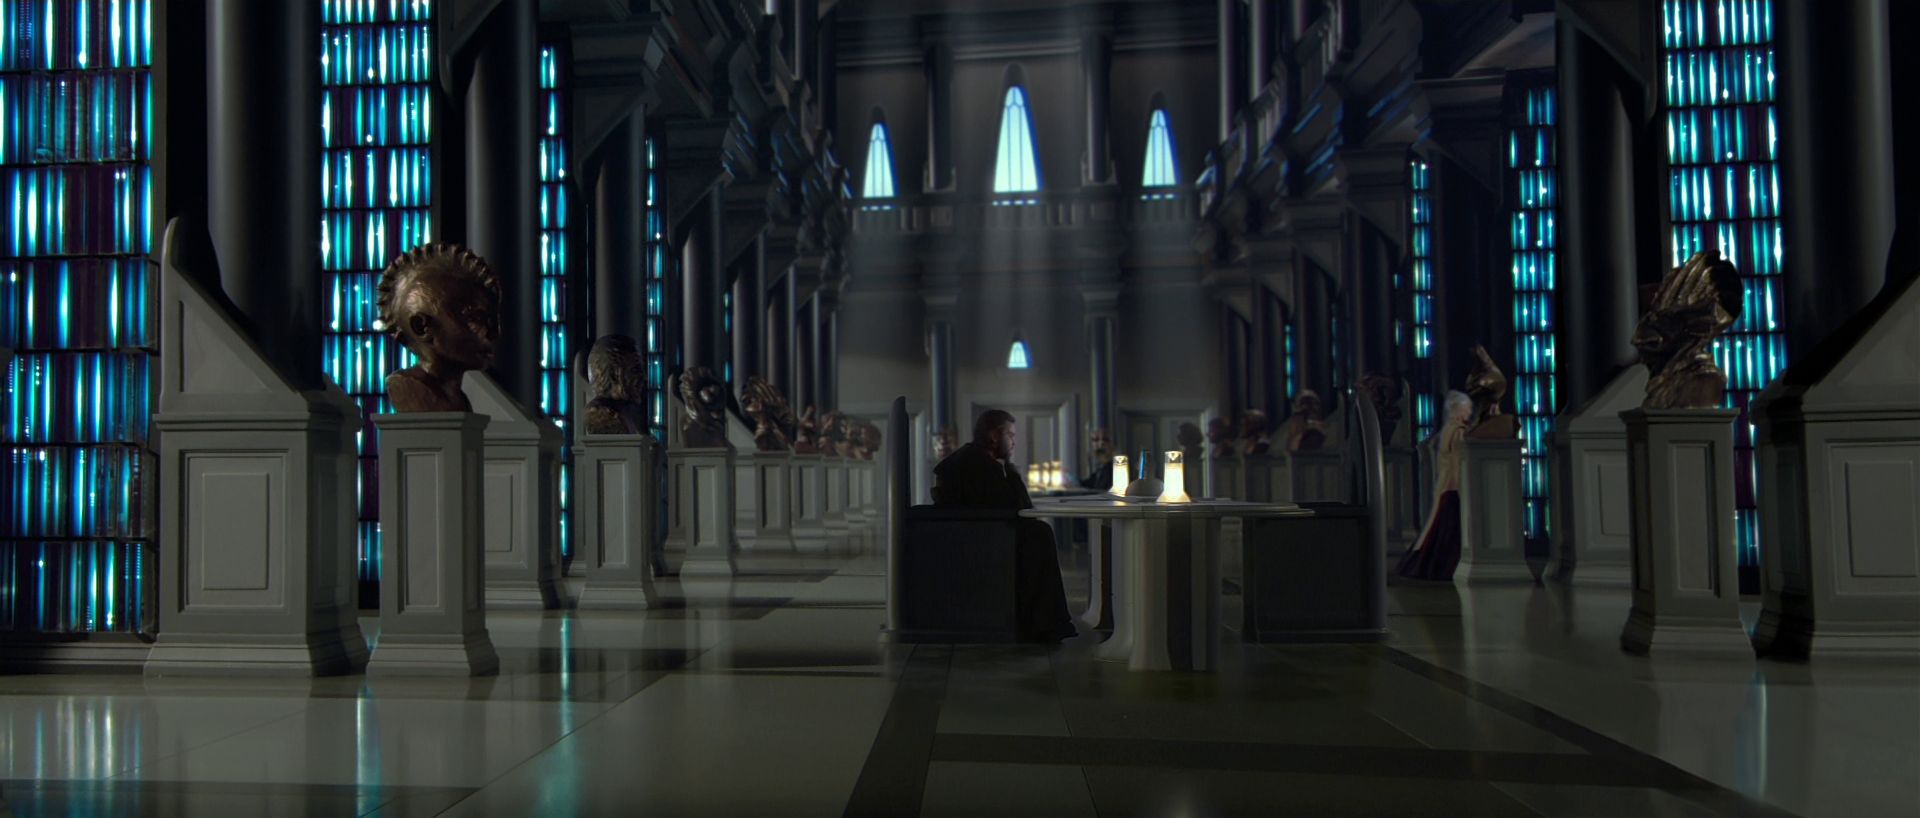 Image result for star wars jedi library